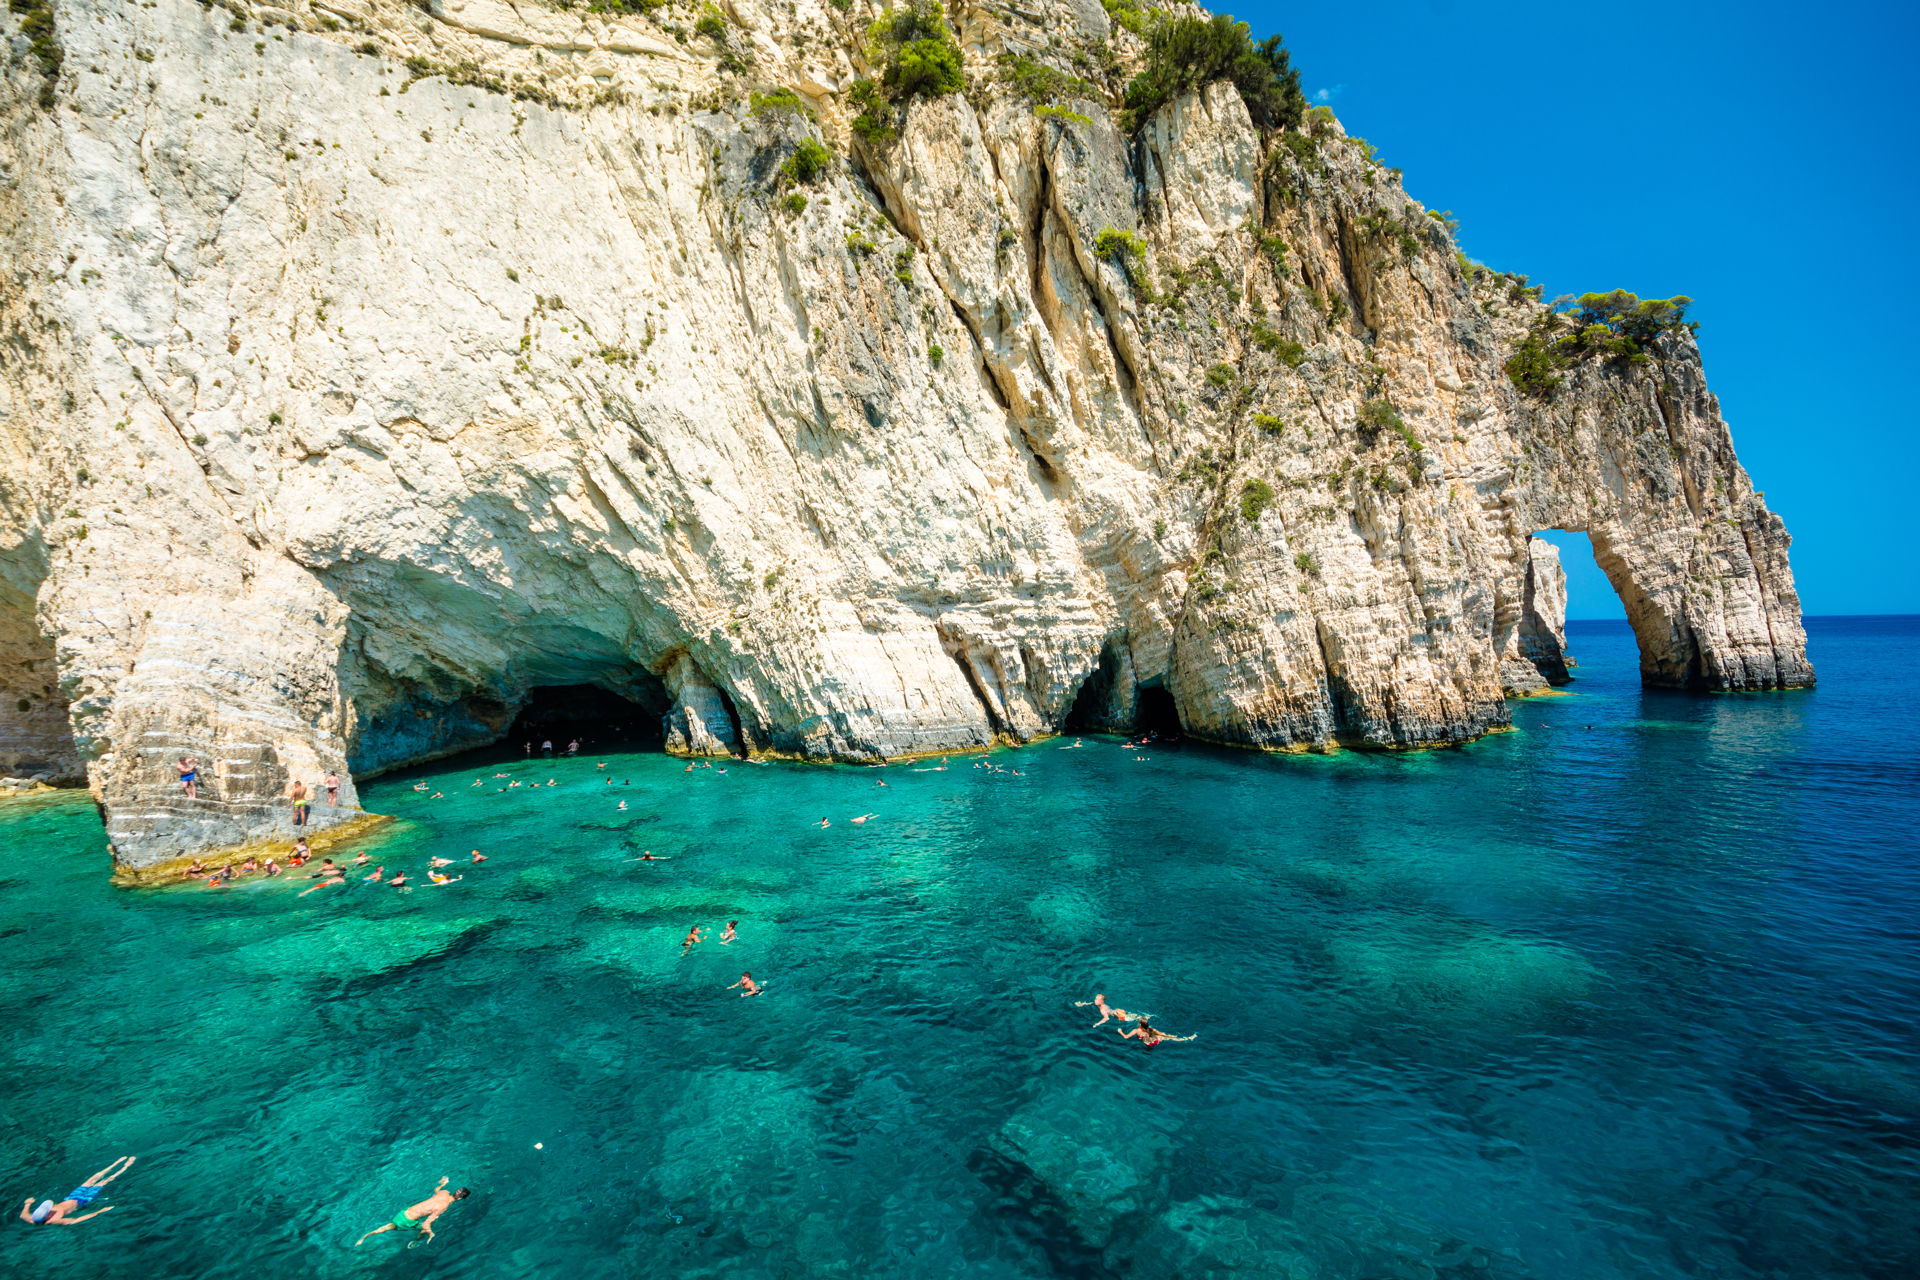 Snorkeling in the Blue Caves of Zakynthos